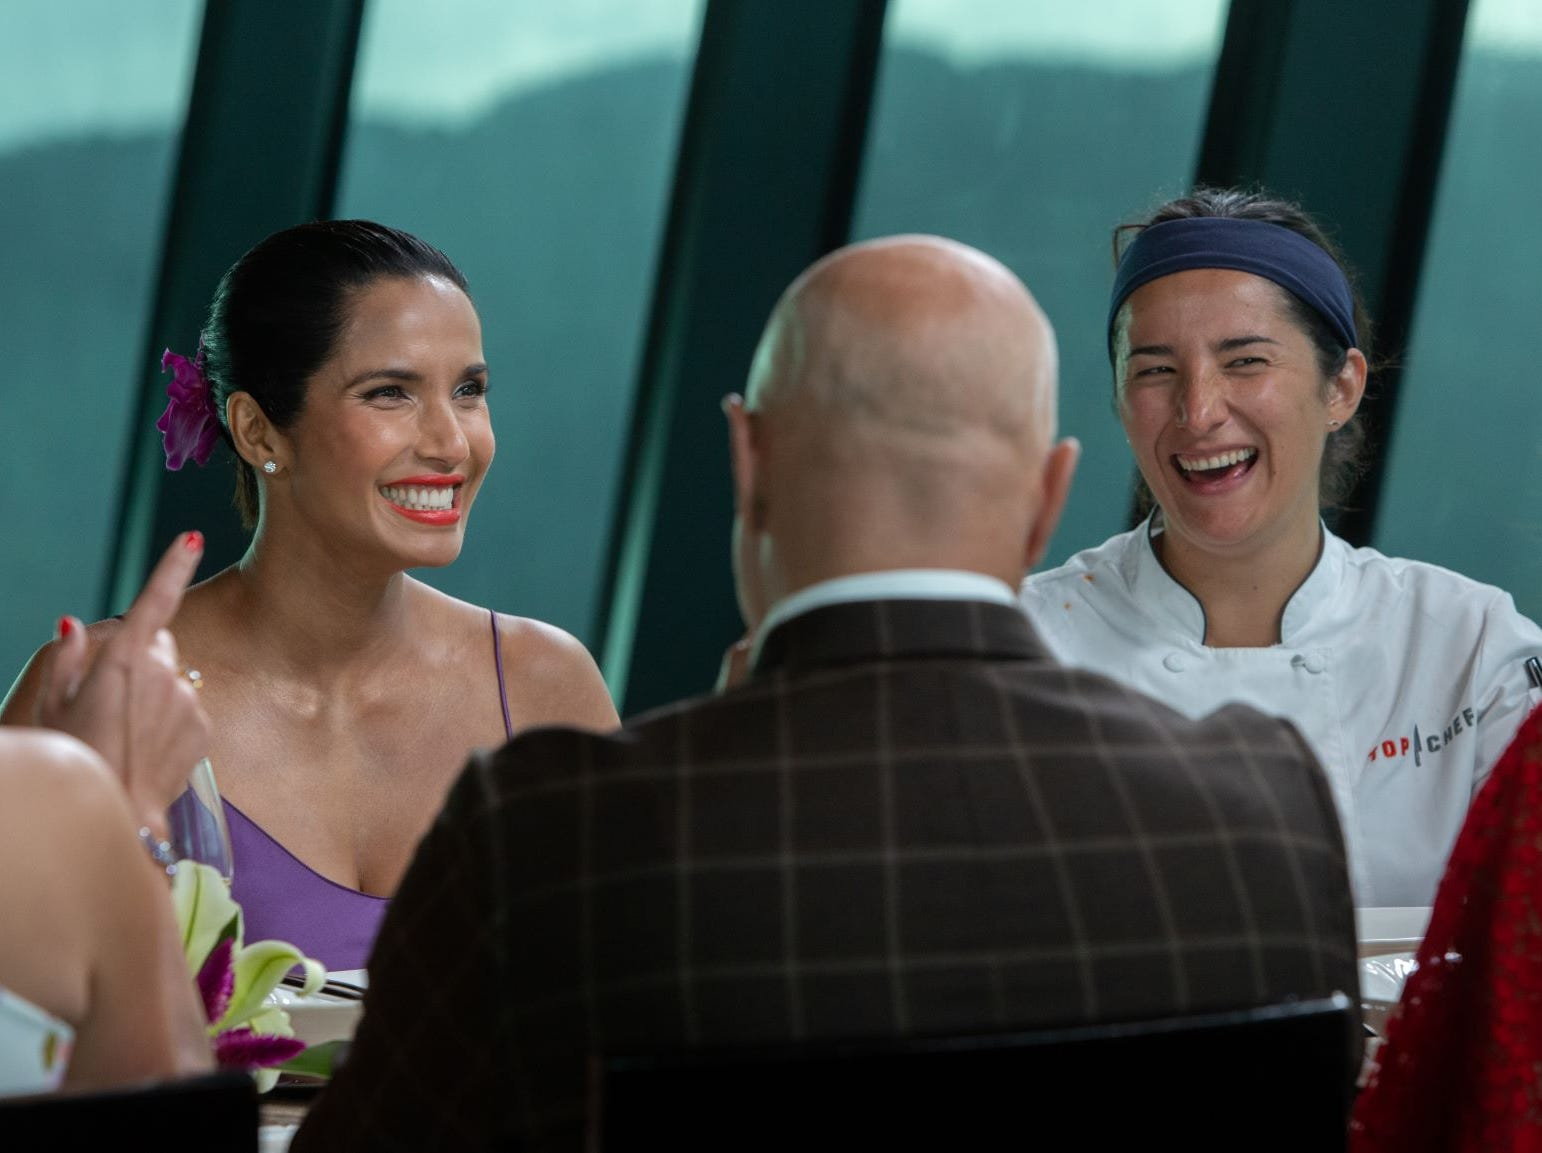 """(From left to right): Host Padma Lakshmi and contestant Michelle Minori share a laugh on """"The Tao of Macau,"""" episode 14 of Bravo's 'Top Chef:' Kentucky season."""